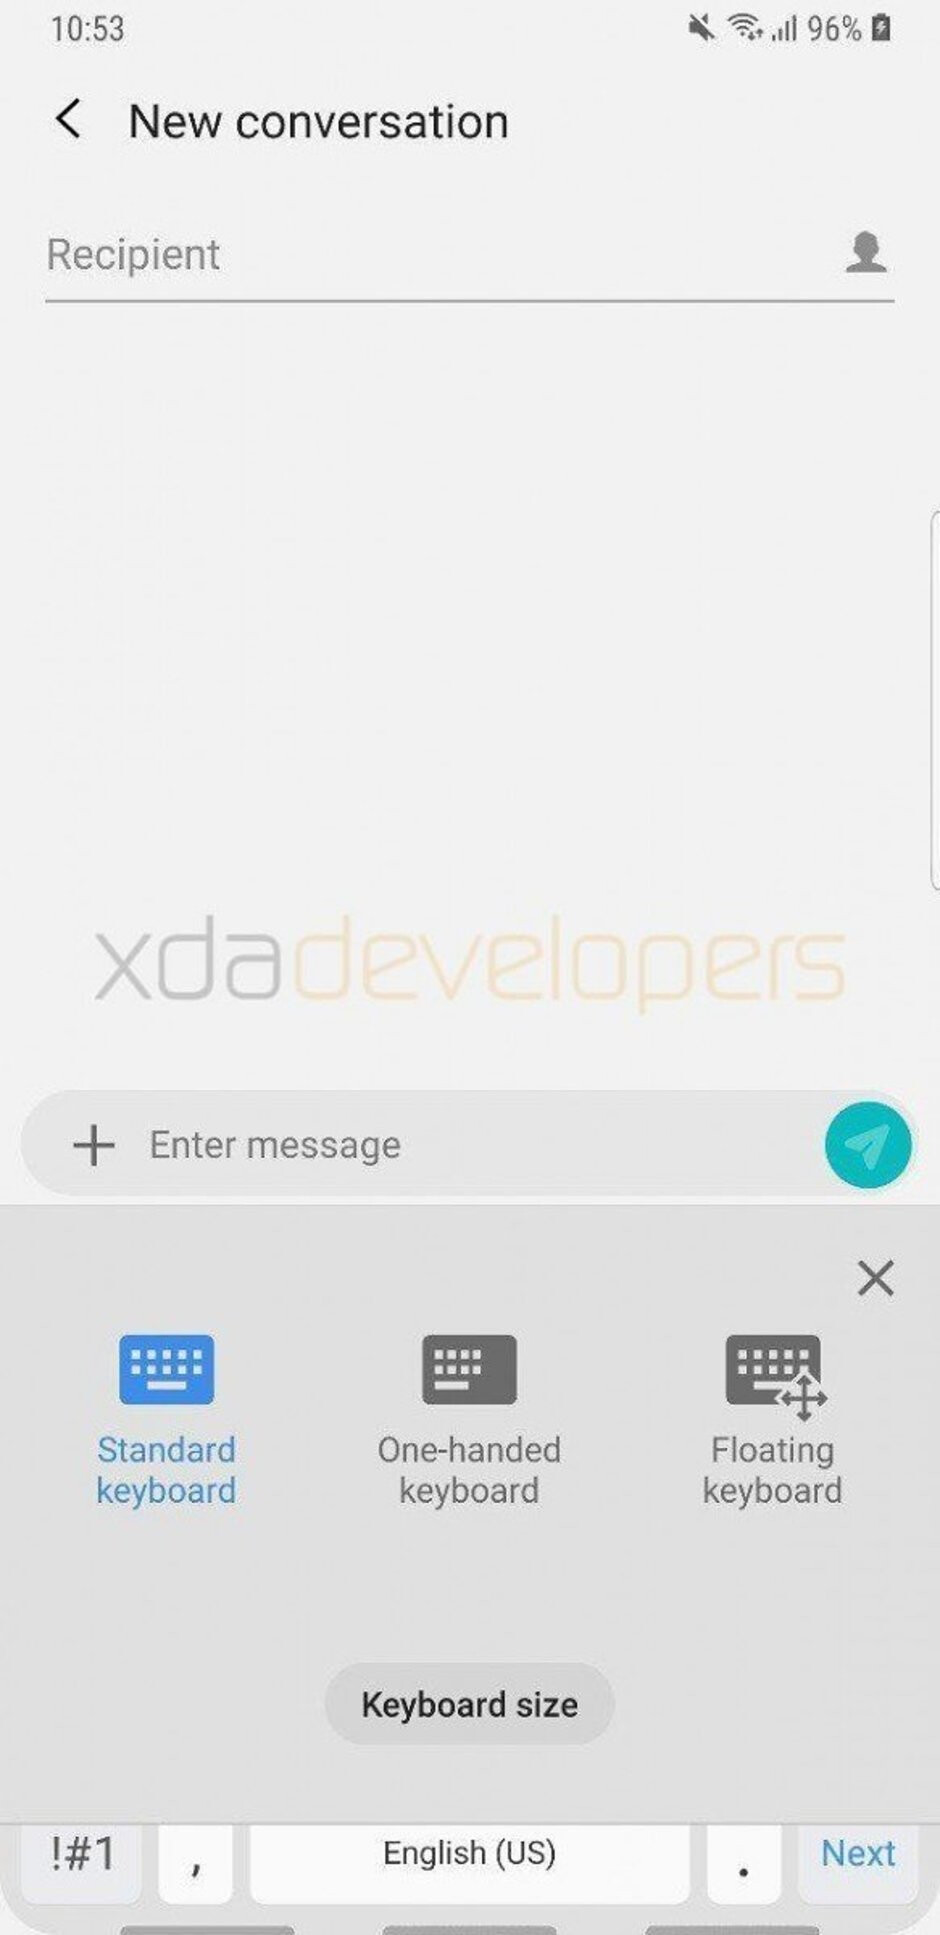 Samsung's keyboard app for Android devices is getting a floating mode